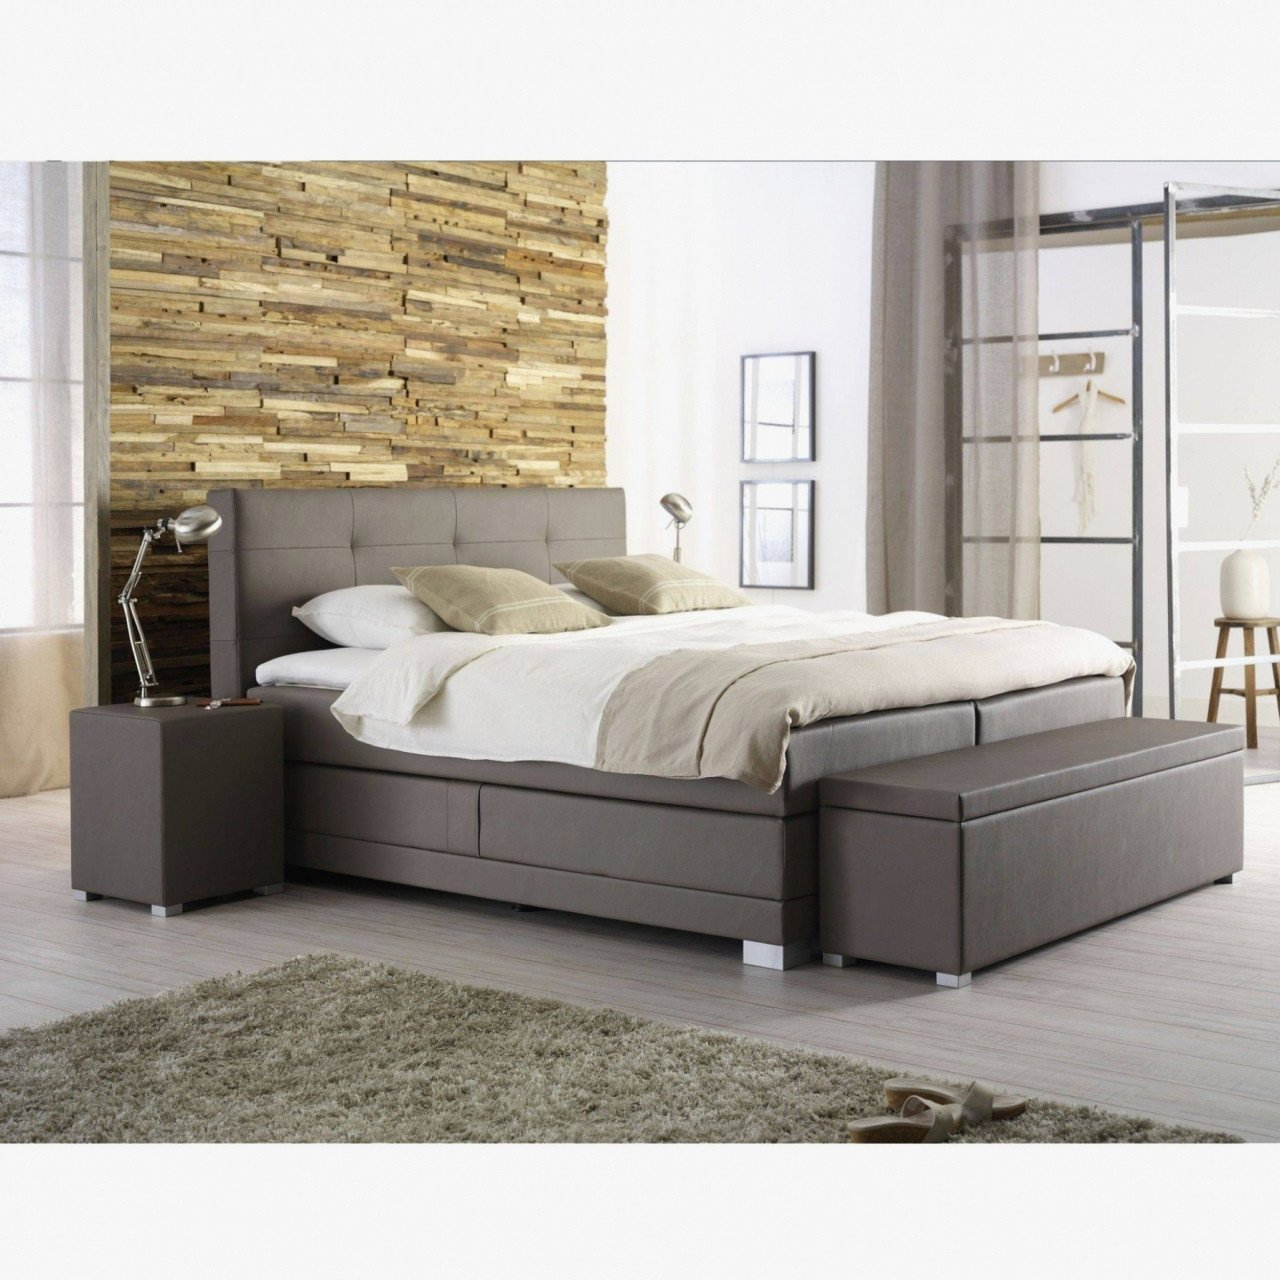 Platform Bedroom Set Queen Luxury Bed with Drawers Under — Procura Home Blog